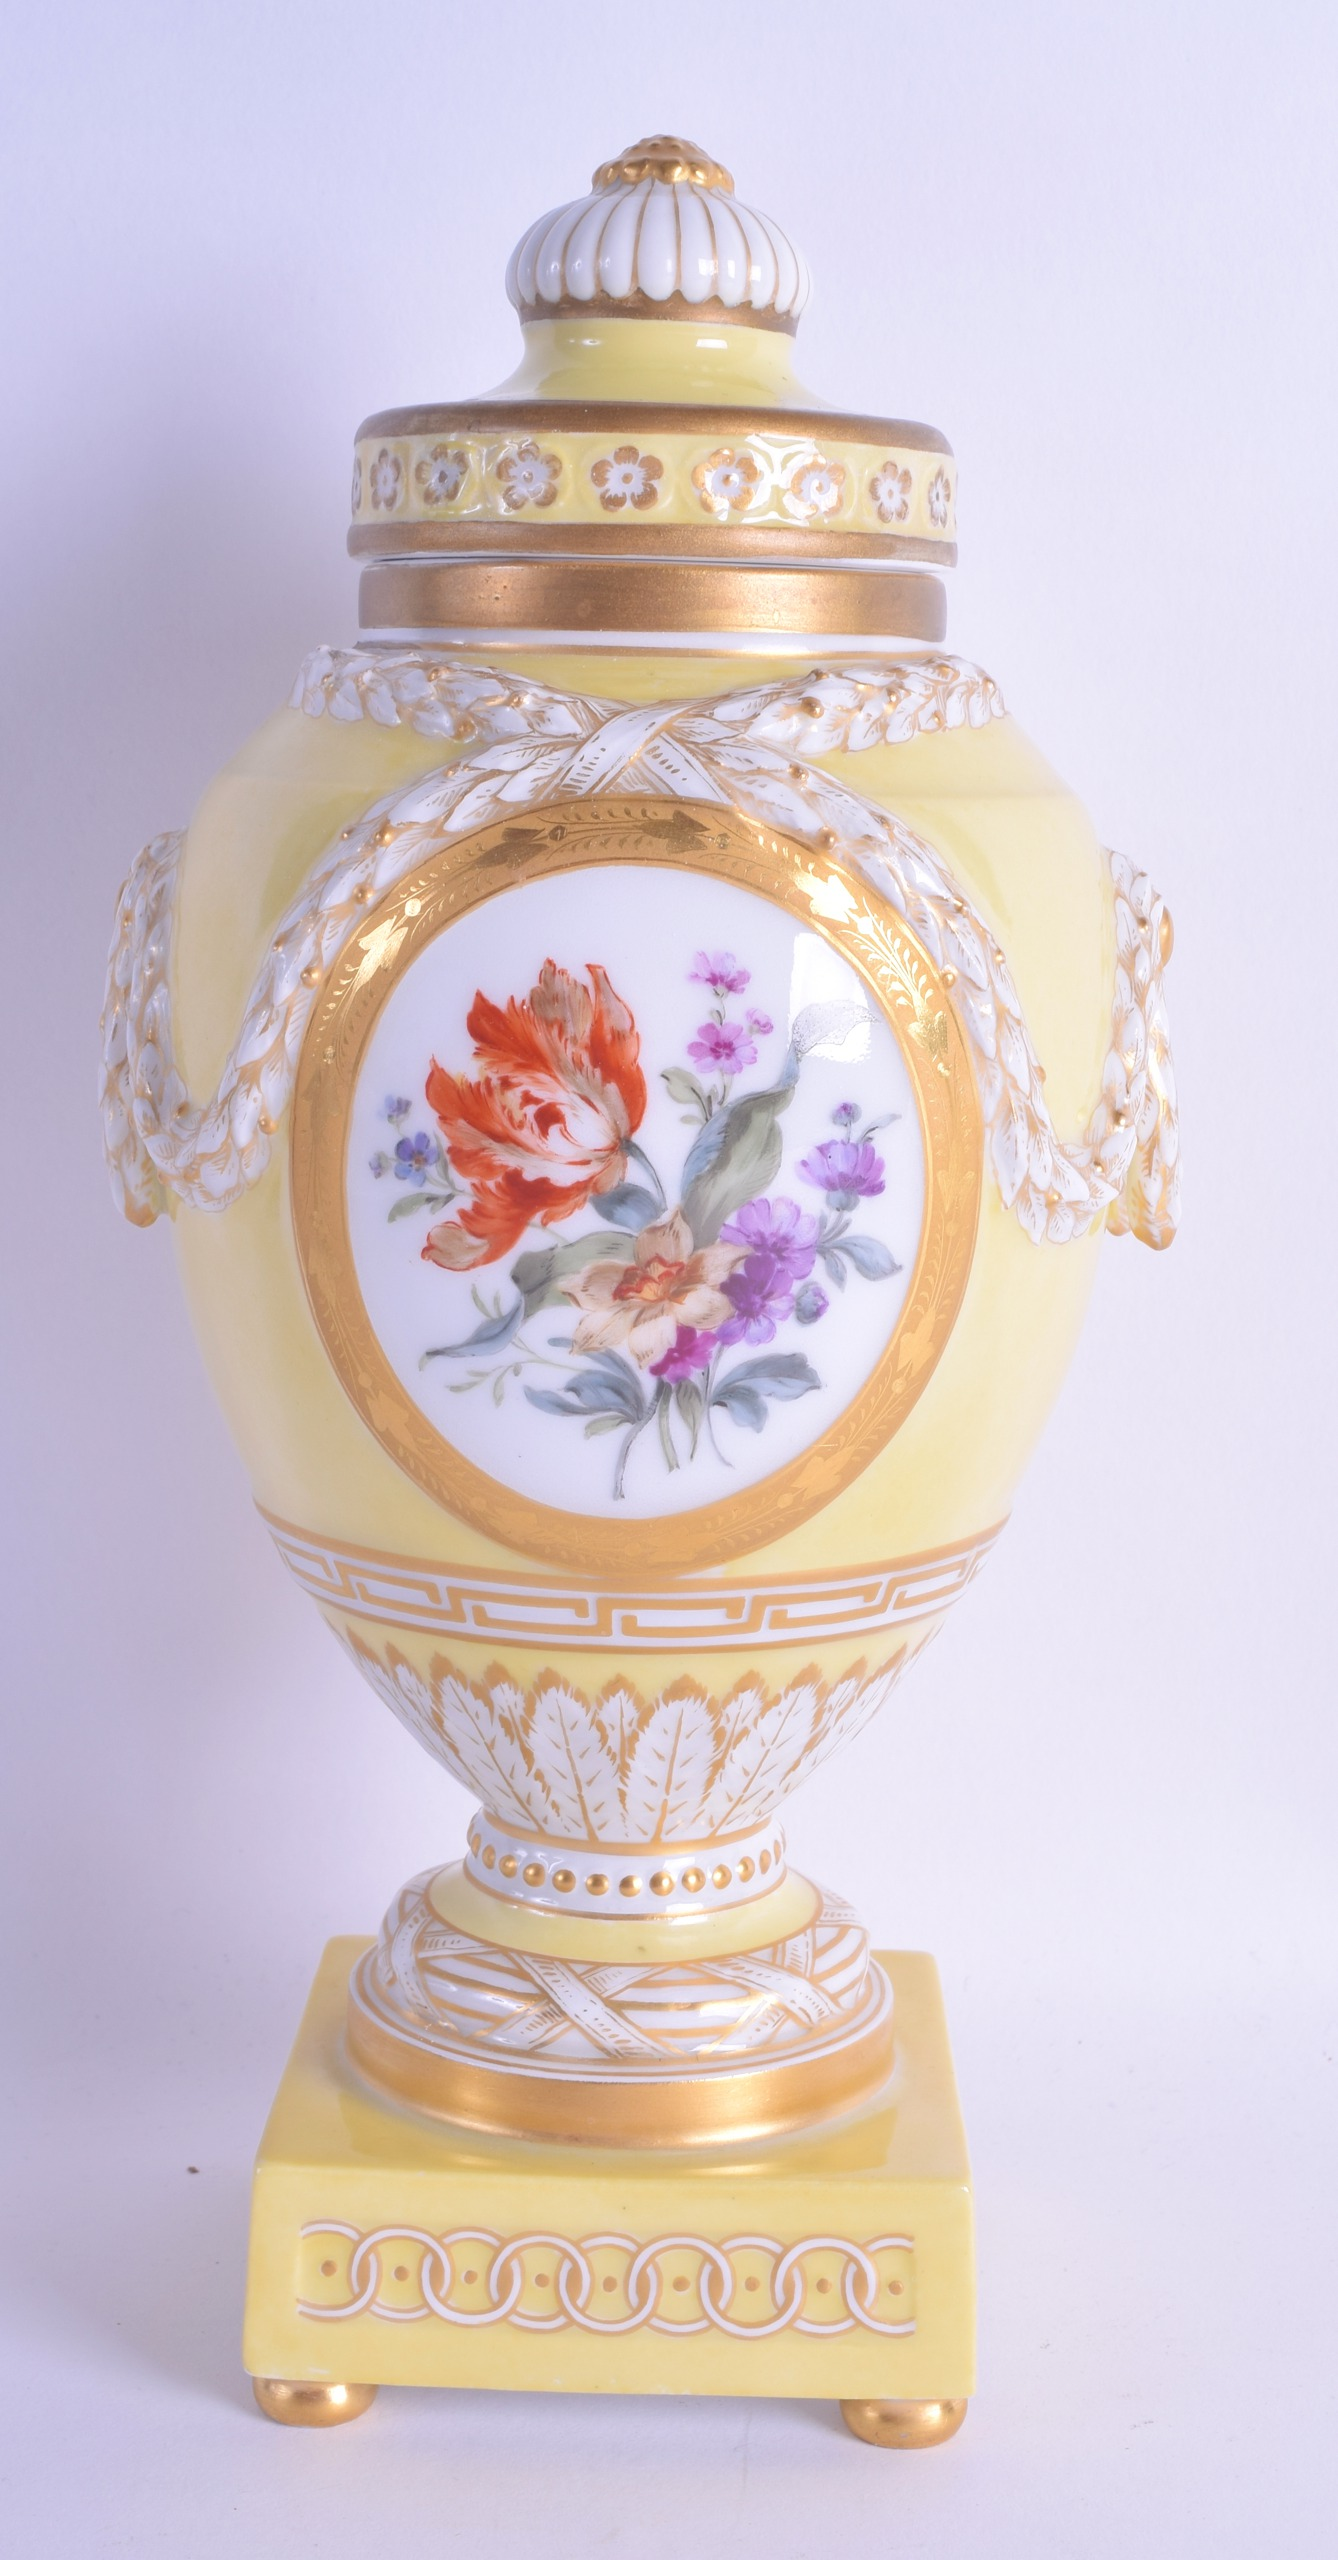 Lot 98 - A FINE 19TH CENTURY KPM BERLIN YELLOW VASE AND COVER painted with two putti amongst clouds. 25 cm